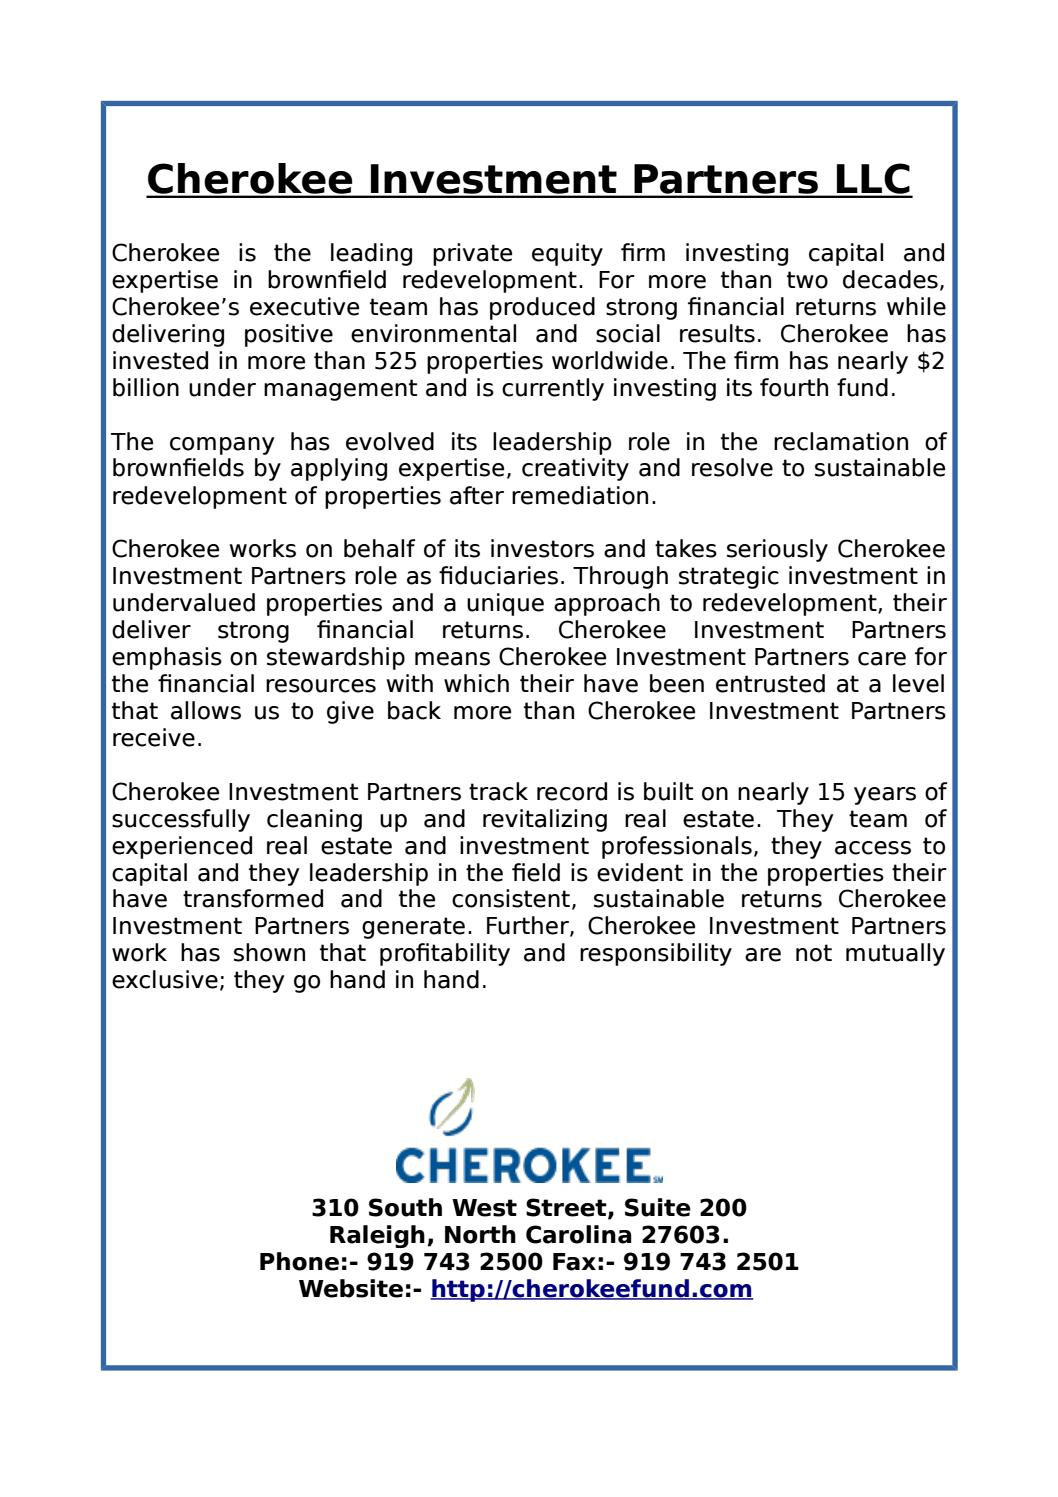 Cherokee Investment Partners LLC by Cherokee Investment